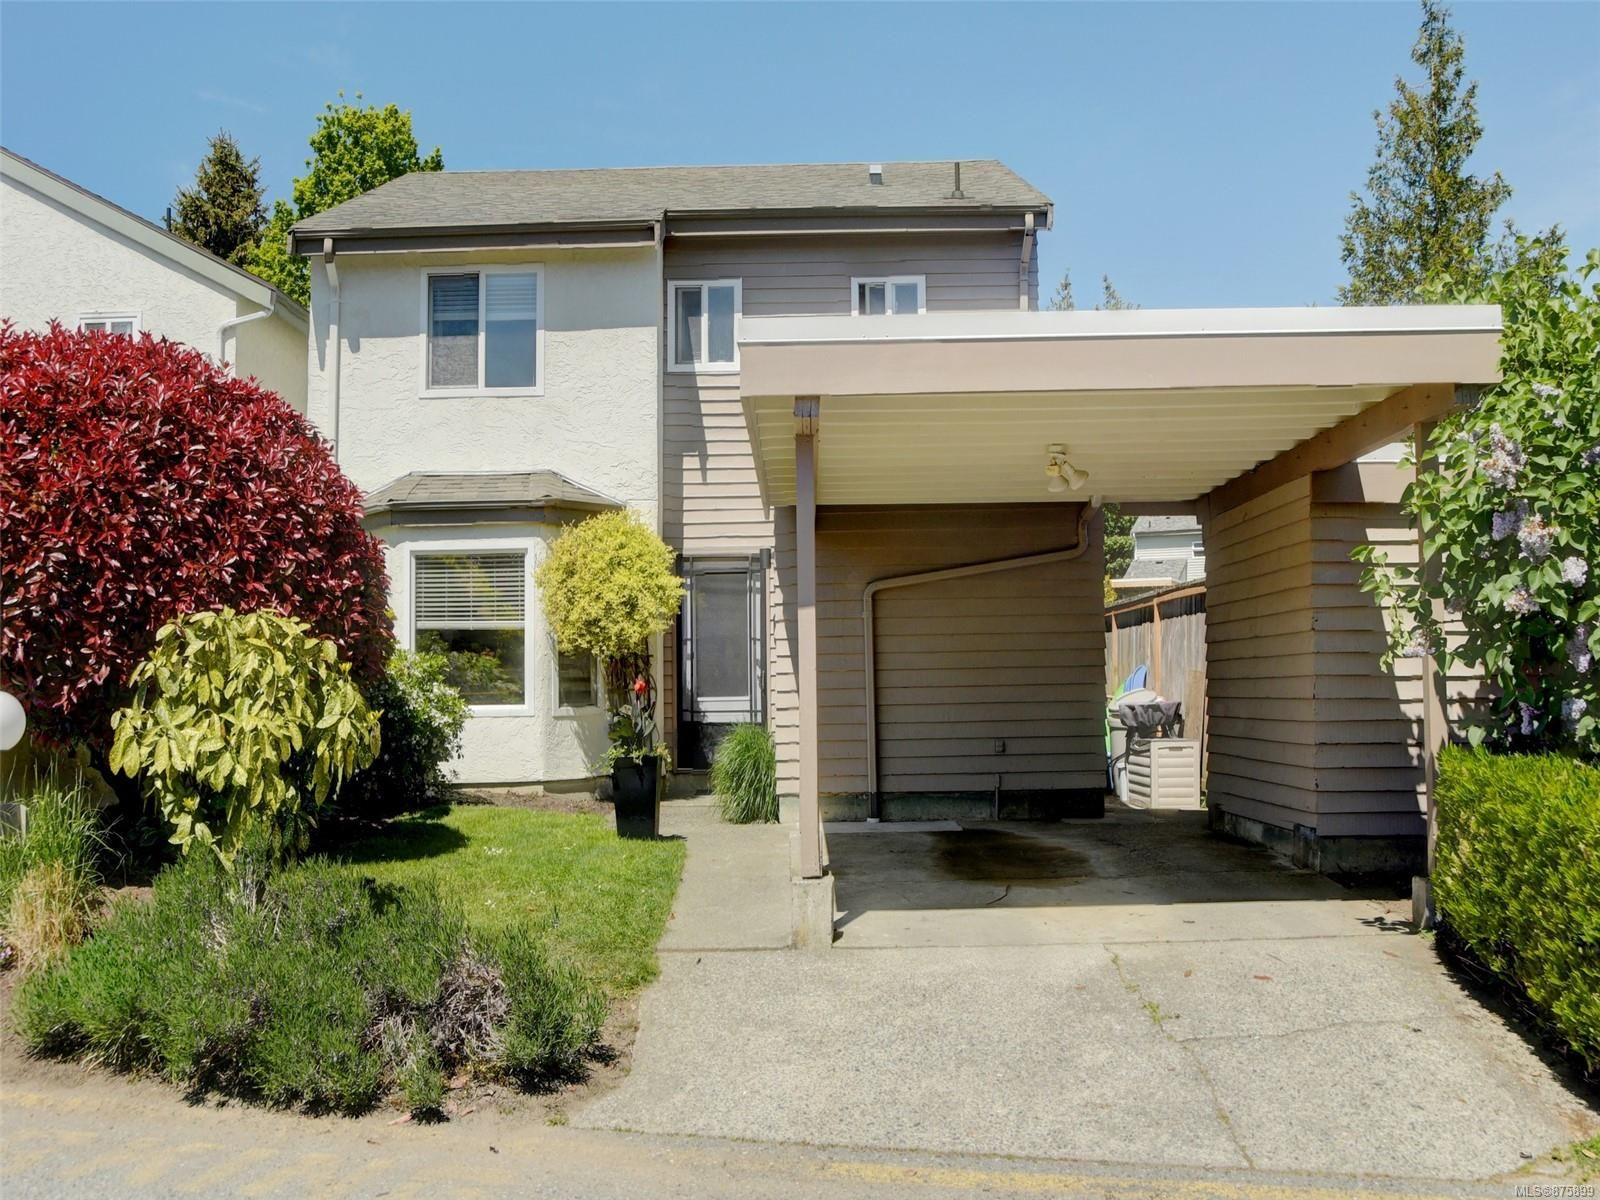 Main Photo: 16 7925 Simpson Rd in : CS Saanichton Row/Townhouse for sale (Central Saanich)  : MLS®# 875899